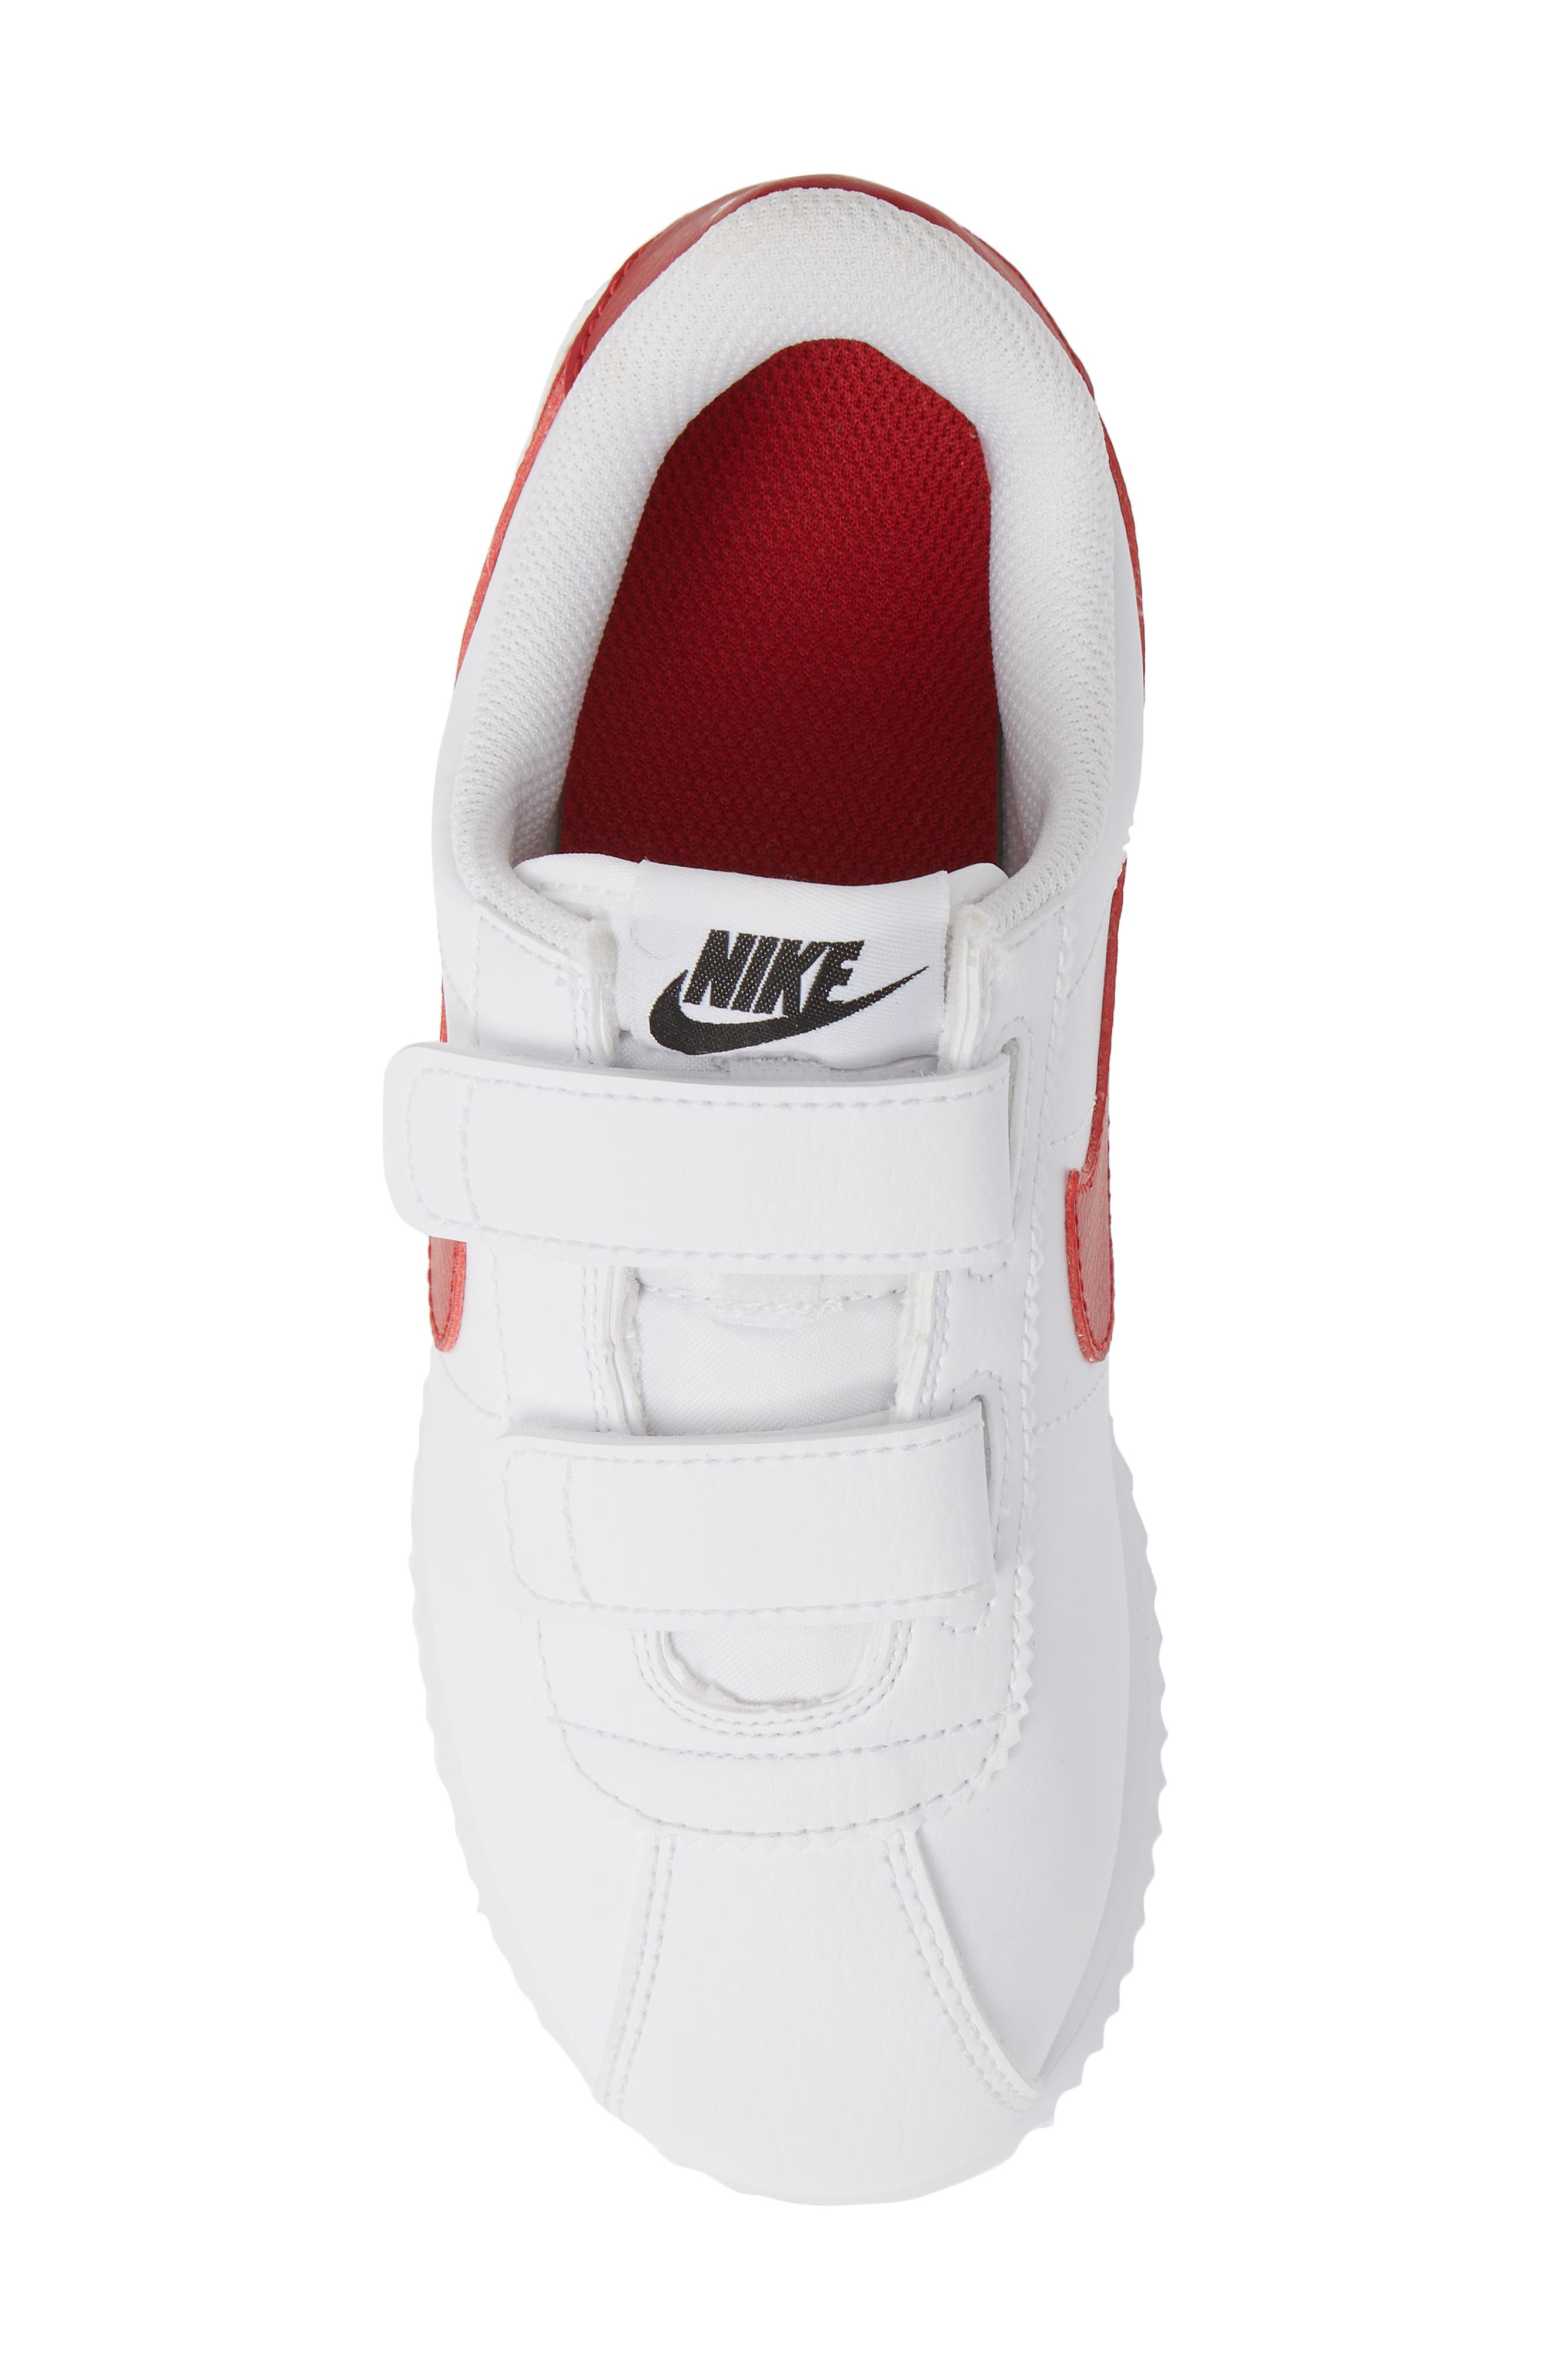 NIKE,                             Cortez Basic SL Sneaker,                             Alternate thumbnail 5, color,                             WHITE/ VARSITY RED/ BLACK